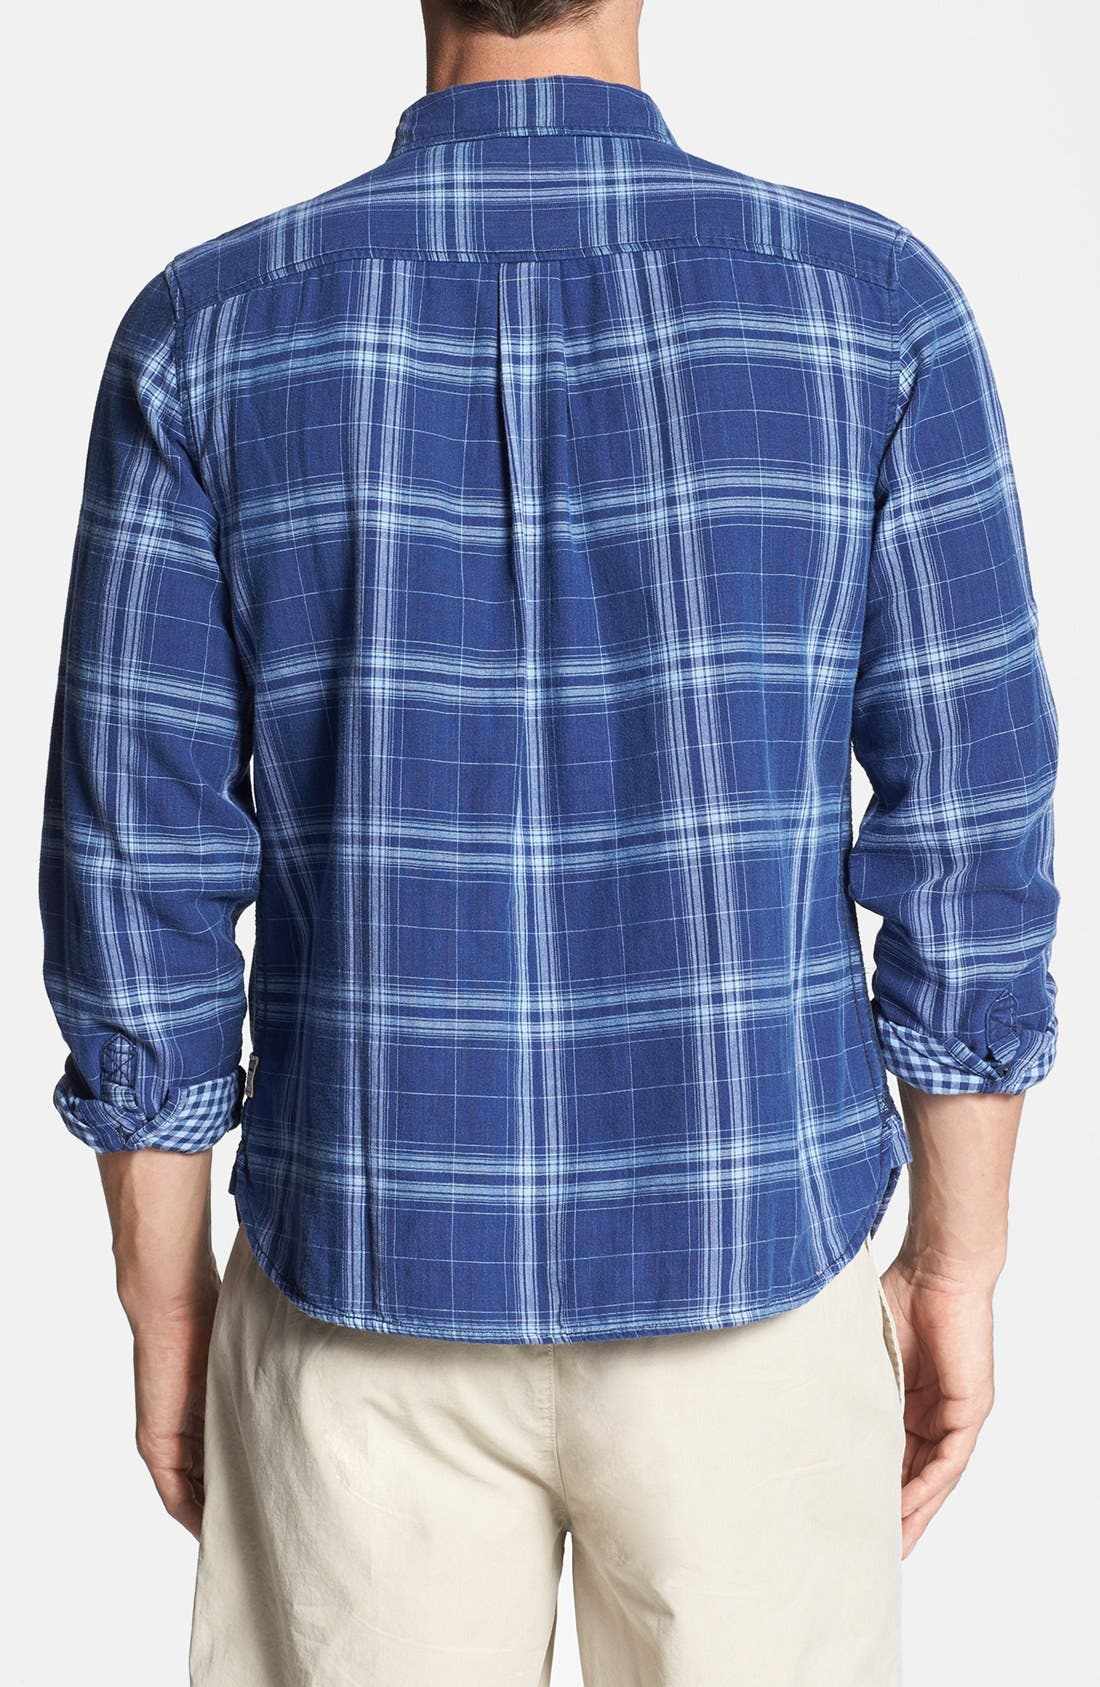 Alternate Image 2  - Surfside Supply Double Face Plaid Cotton Shirt